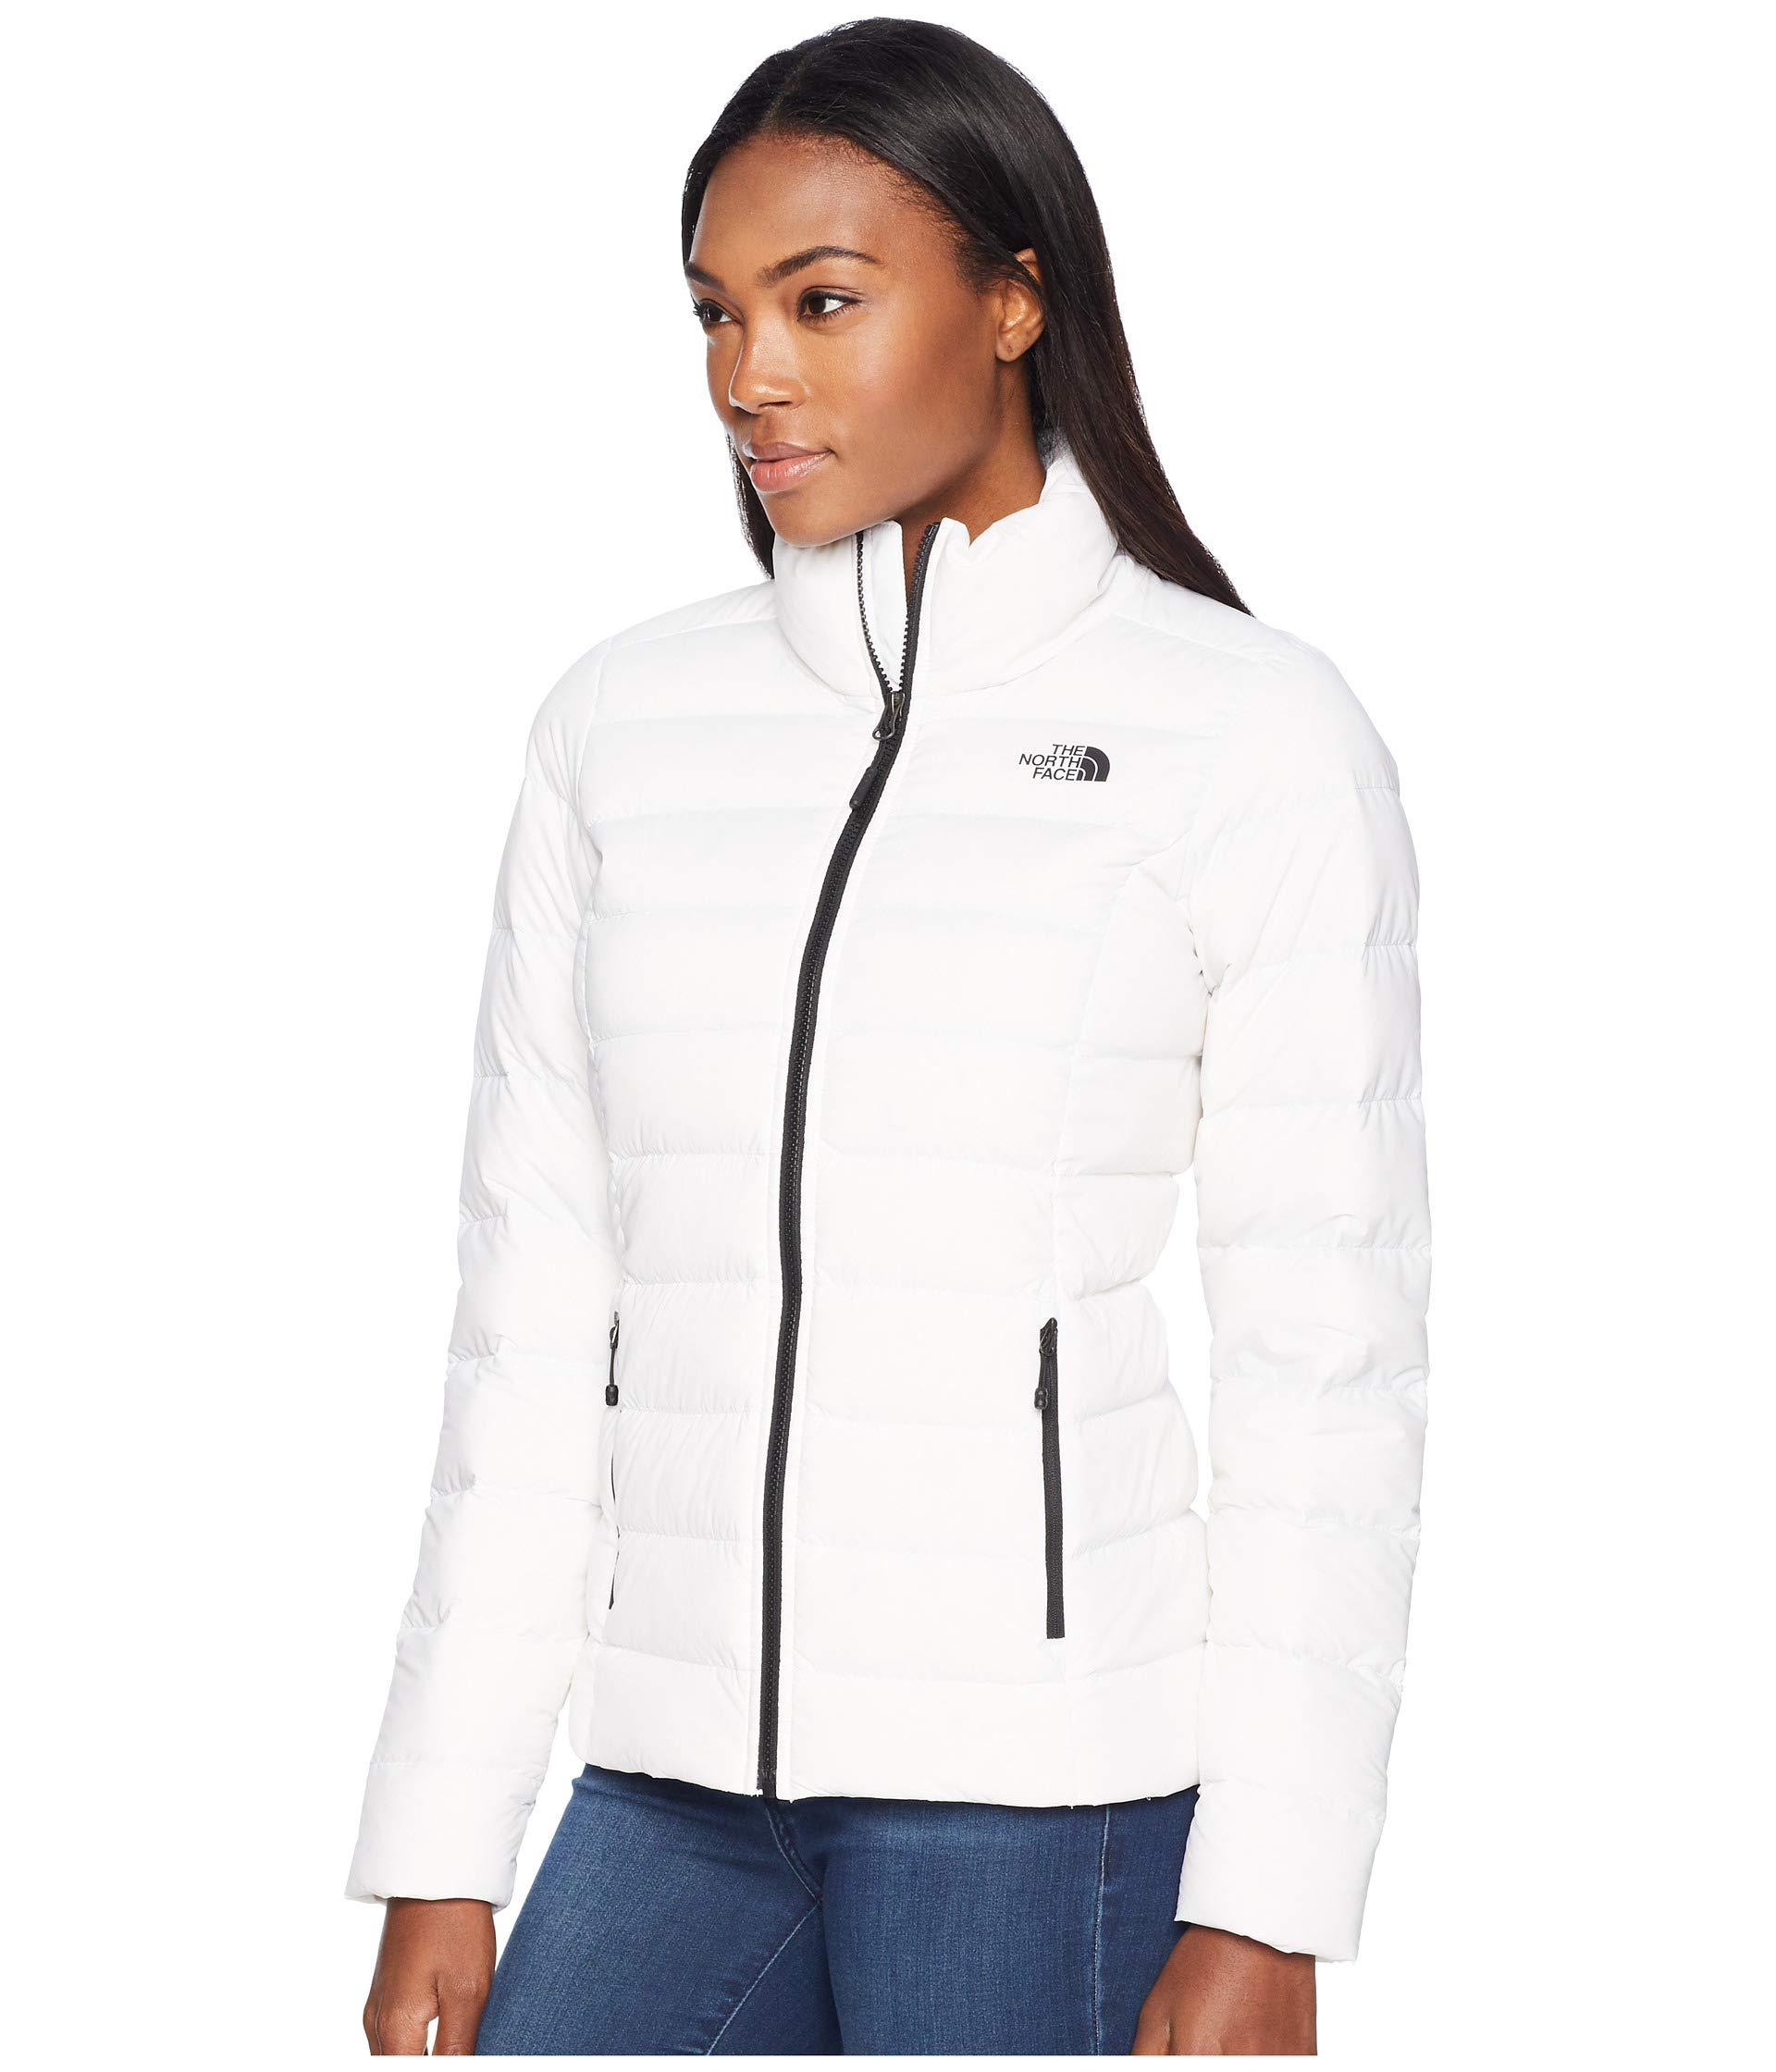 Lyst - The North Face Stretch Down Jacket (tnf Black) Women s Coat in White  - Save 52% 9fd7296d4